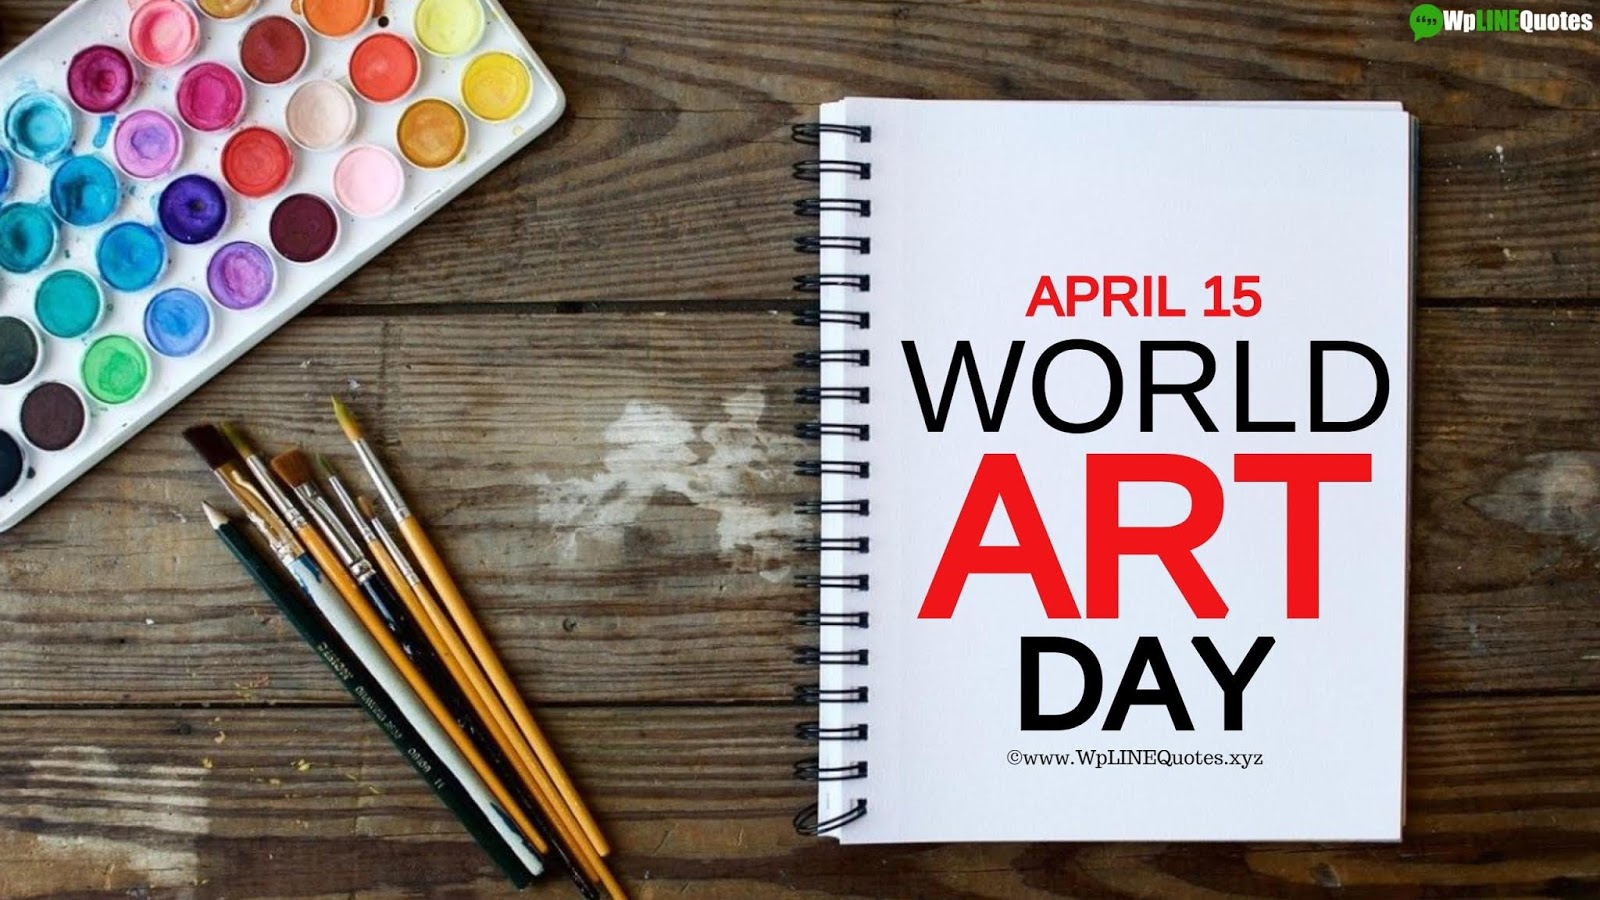 World Art Day Quotes, History, Poster, Images